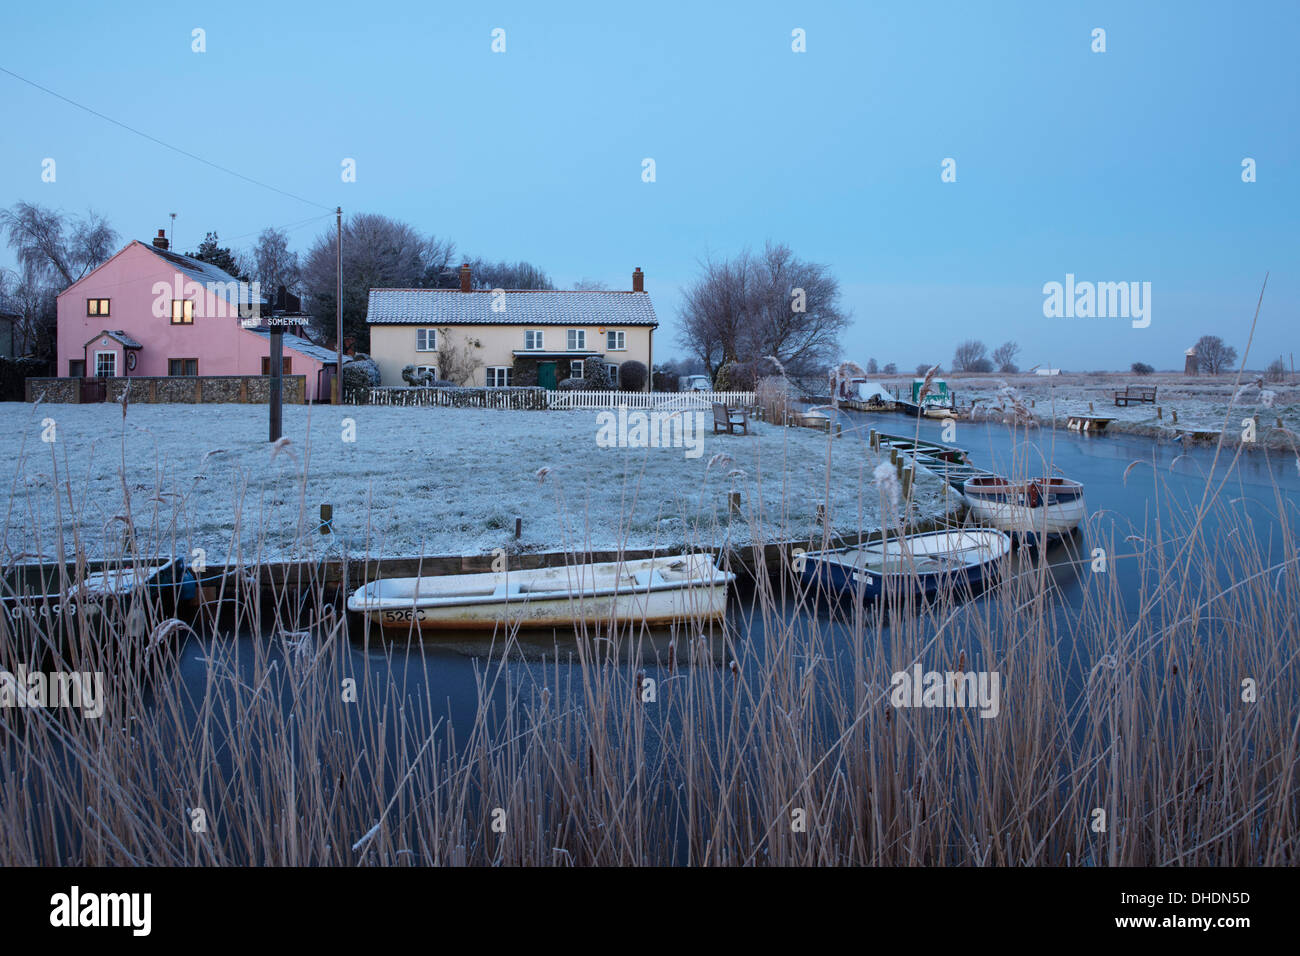 An early morning winter view of West Somerton Staithe, Norfolk, England, United Kingdom, Europe - Stock Image